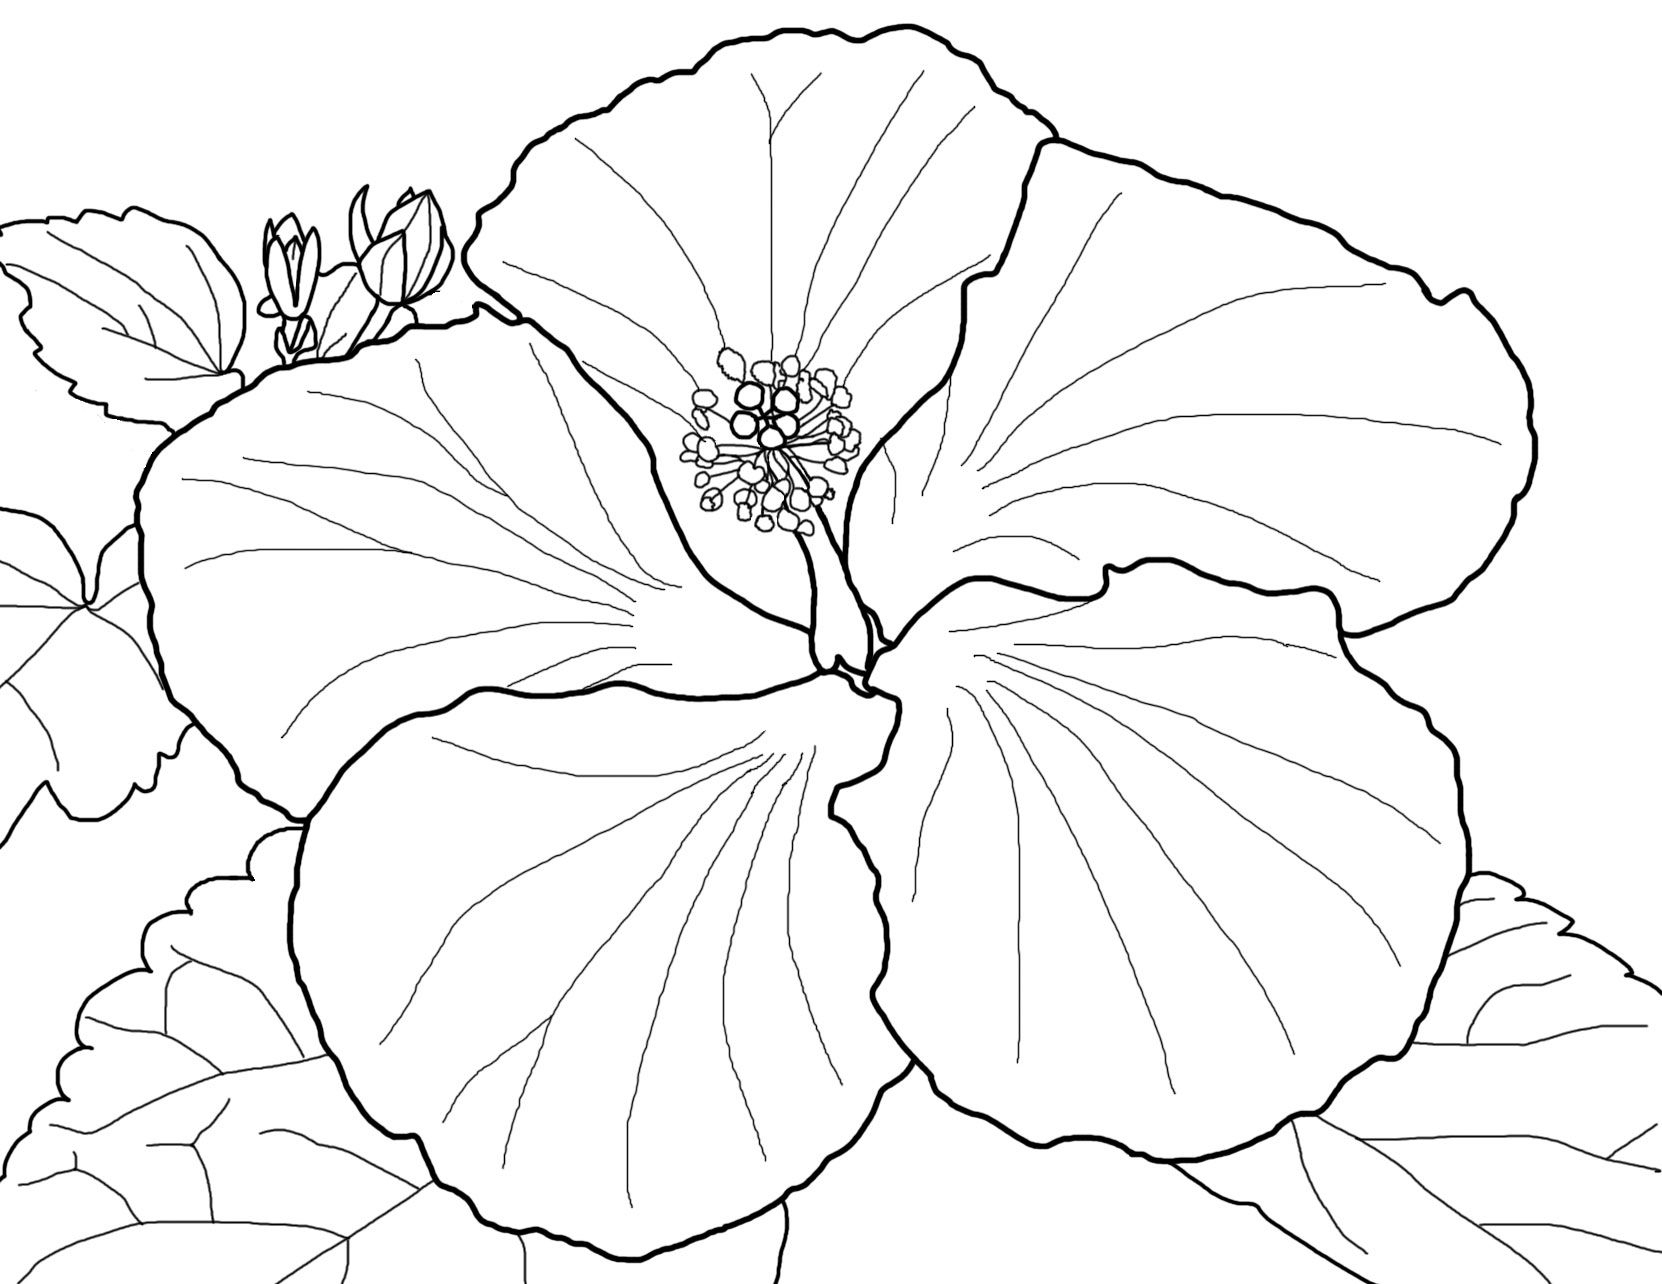 Search Results For Hibiscus Coloring Pages On Getcolorings - Free Printable Hibiscus Coloring Pages